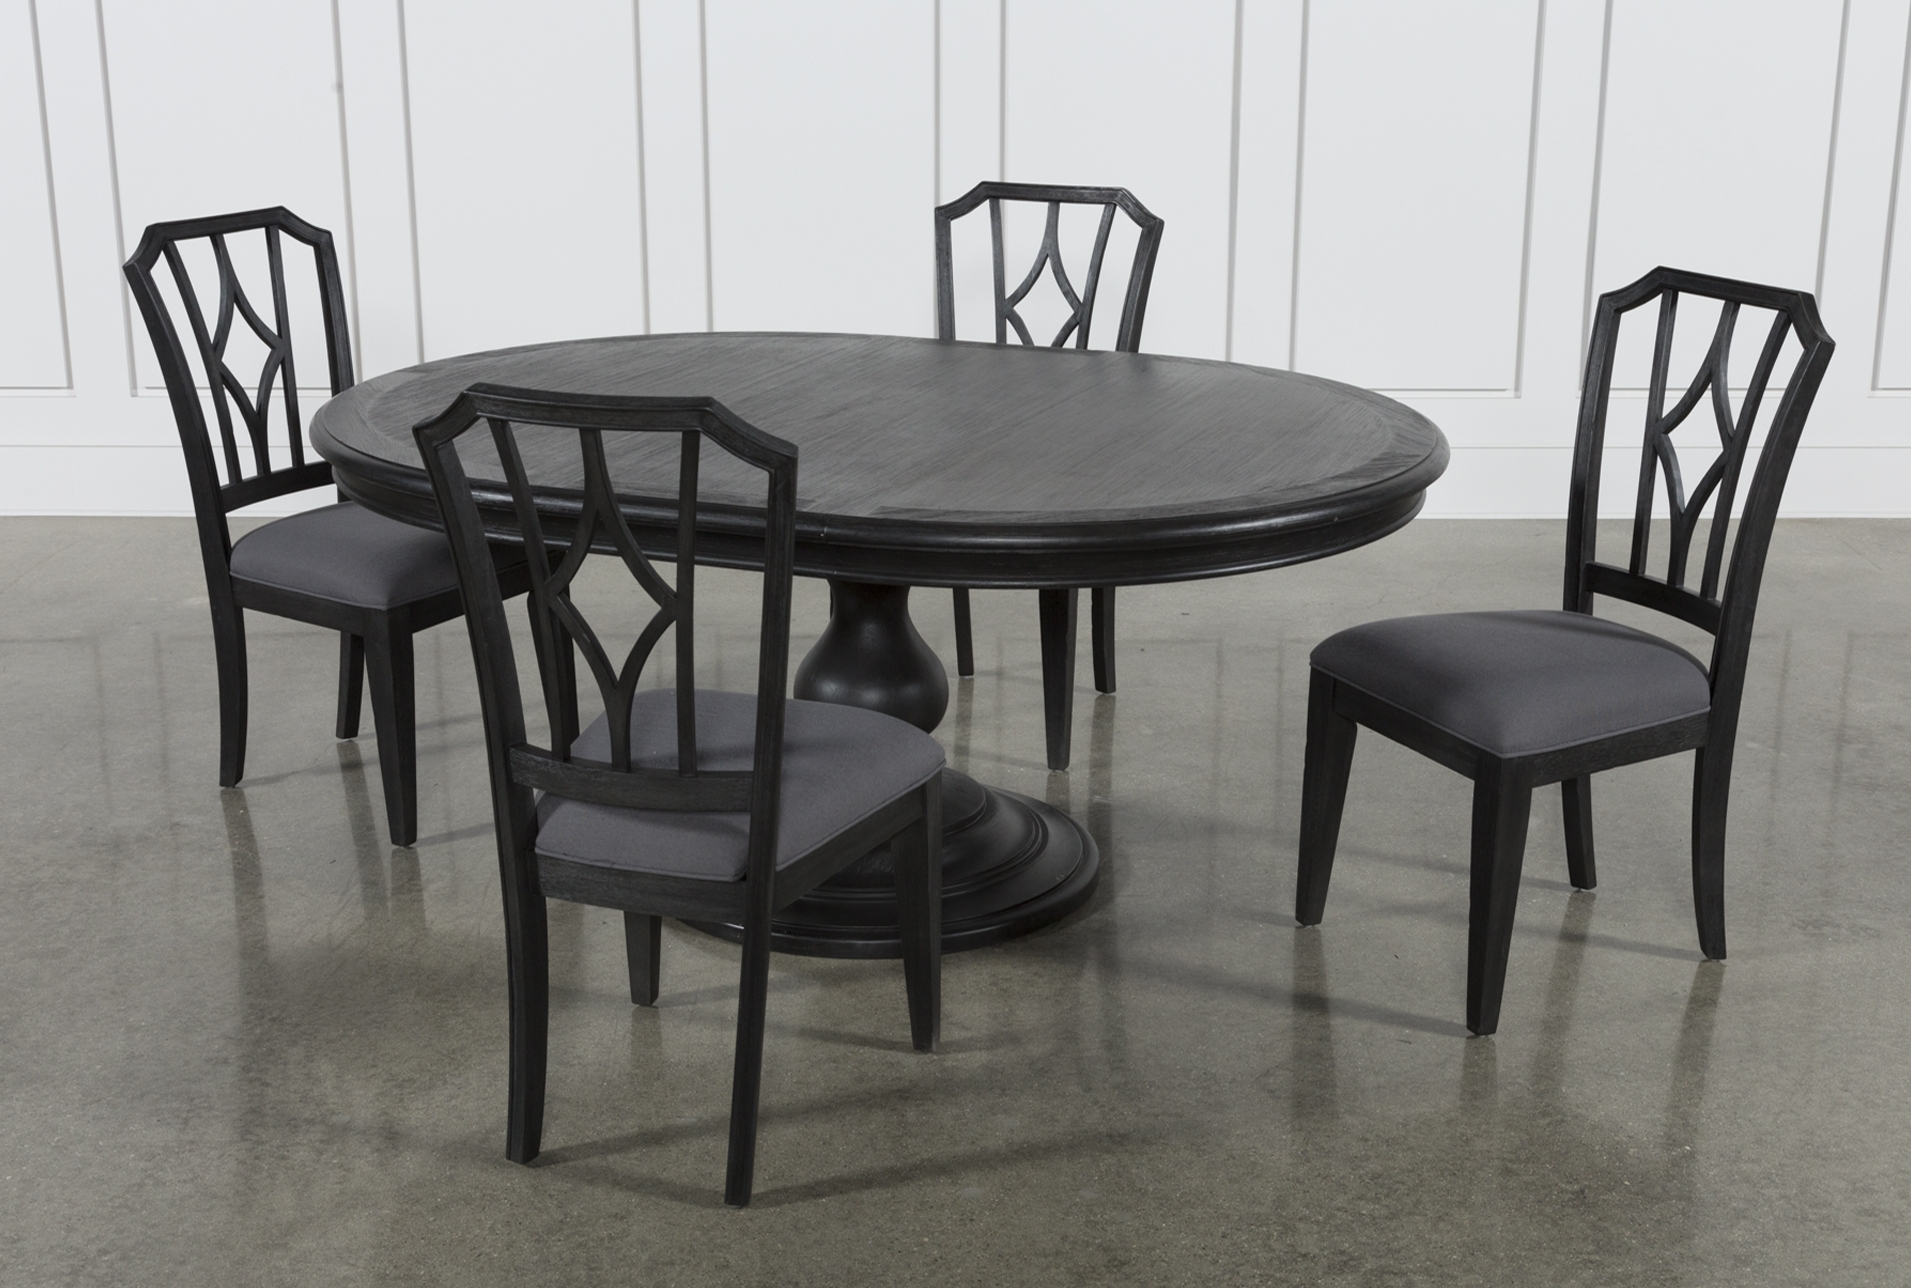 Most Recent Jaxon Grey 5 Piece Round Extension Dining Sets With Wood Chairs Intended For Global Furniture Bar Table Black (View 19 of 25)